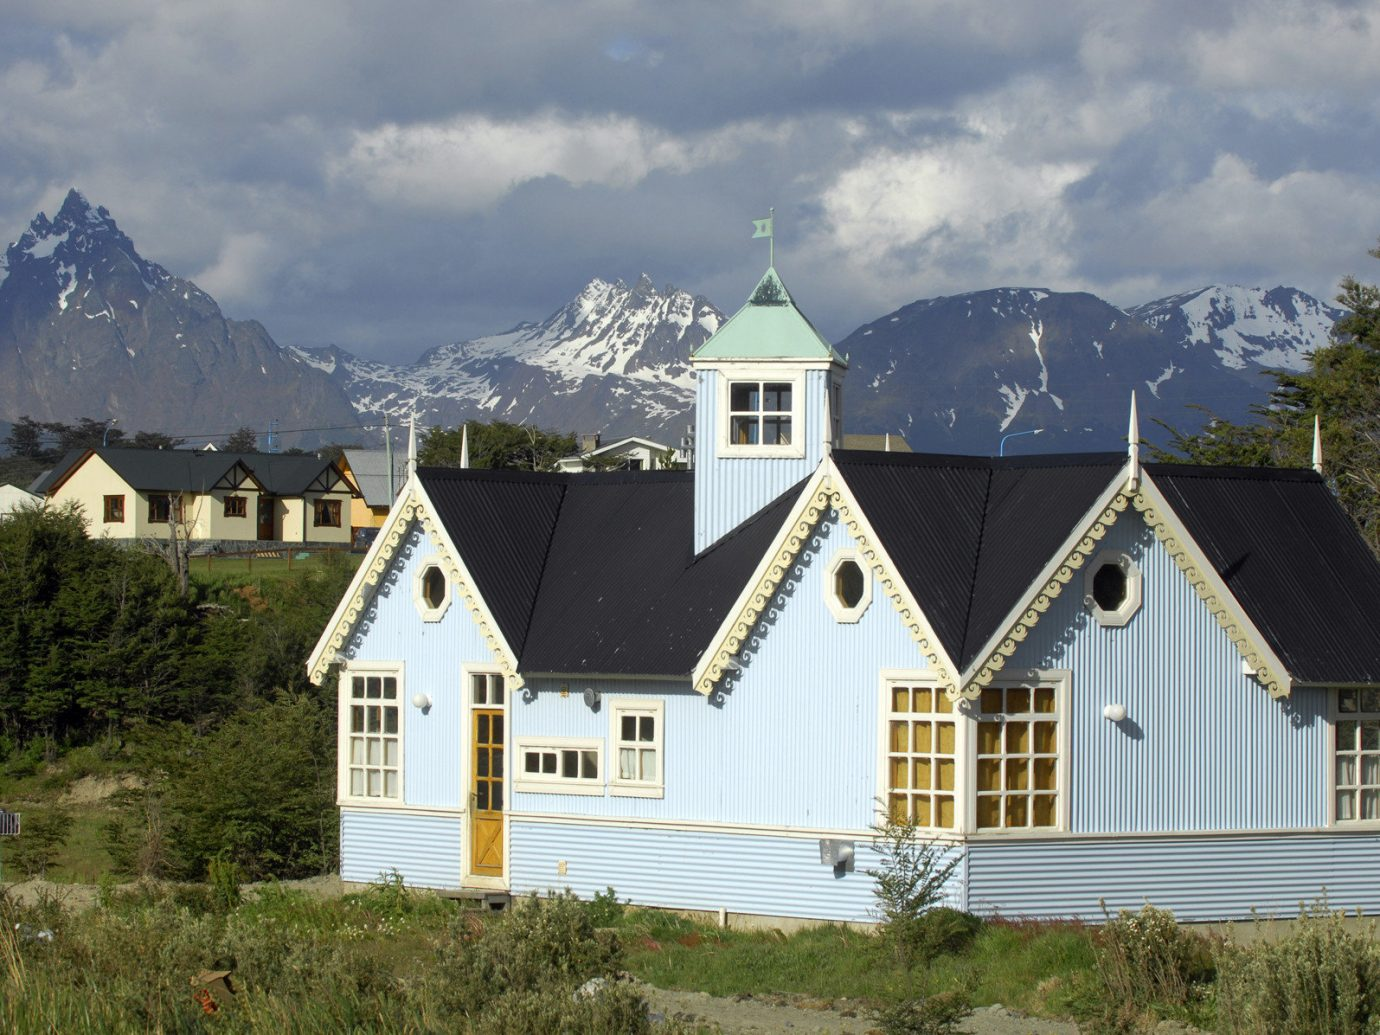 Jetsetter Guides Outdoors + Adventure Packing Tips Travel Tips Trip Ideas mountain outdoor sky grass house building home property cottage background real estate mountain range roof estate hut facade elevation tree window farmhouse alps landscape Town hillside